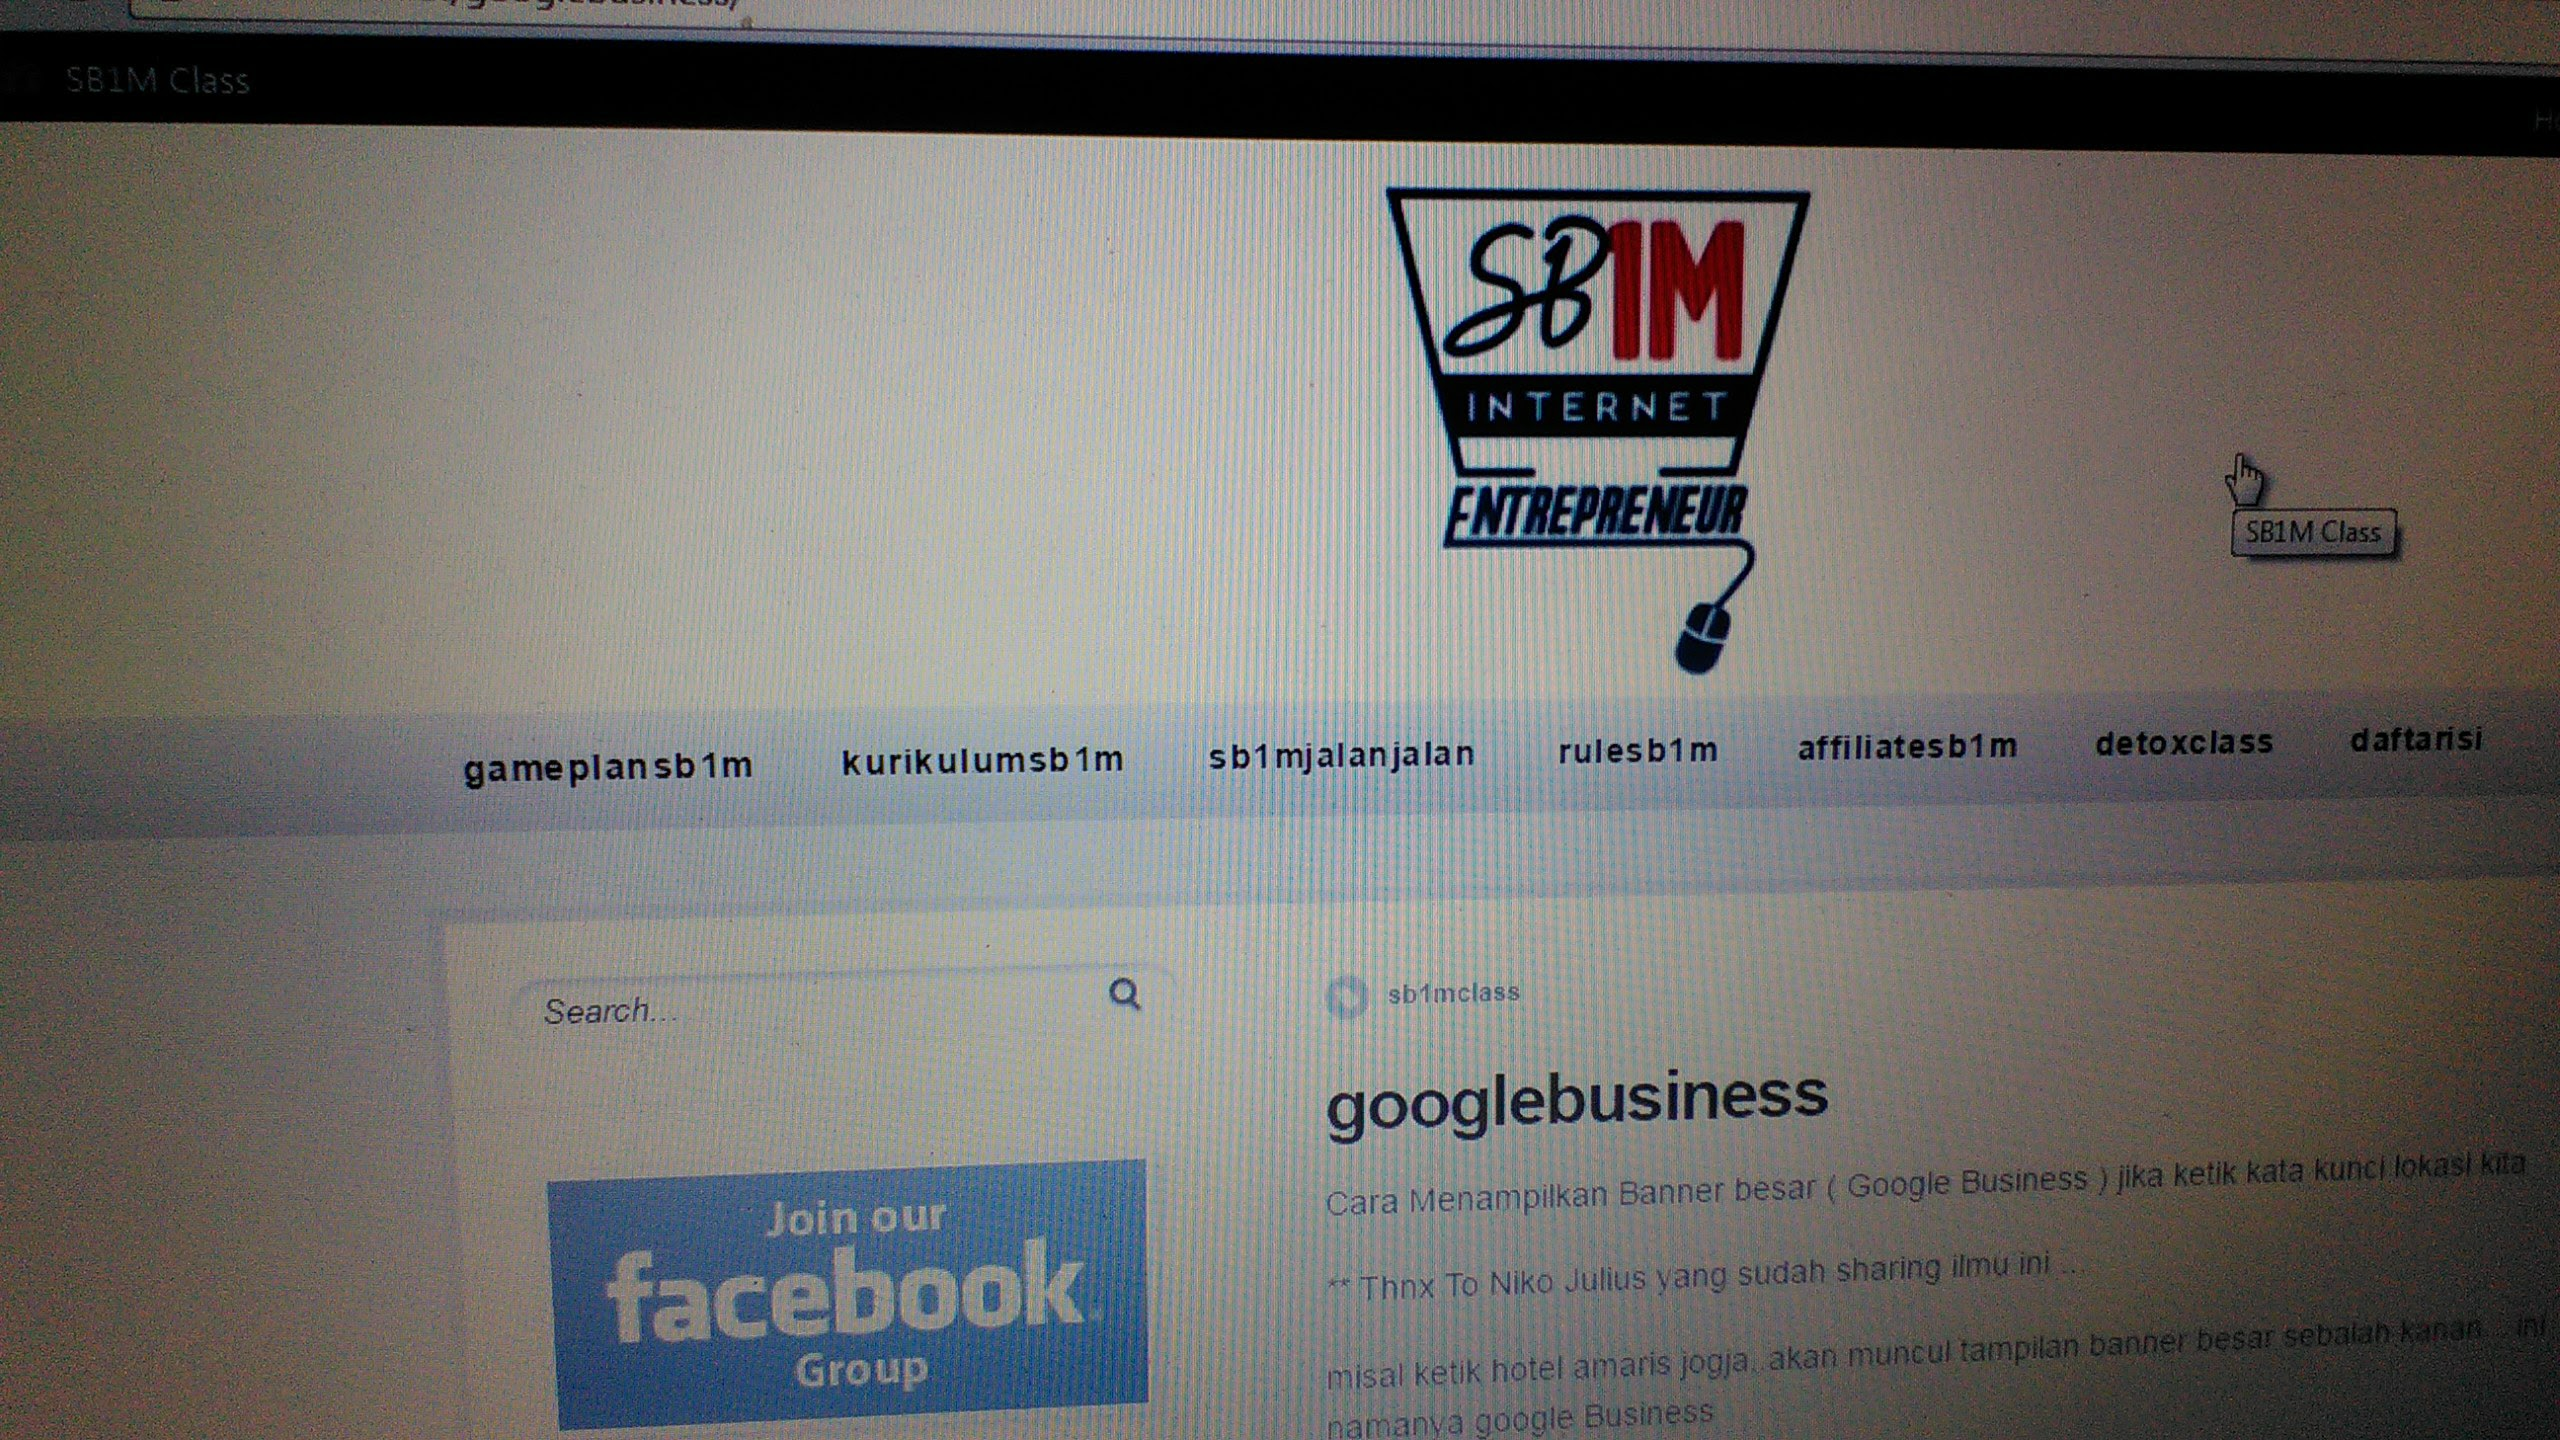 materi-sekolah-internet-marketing-sb1m-google-business